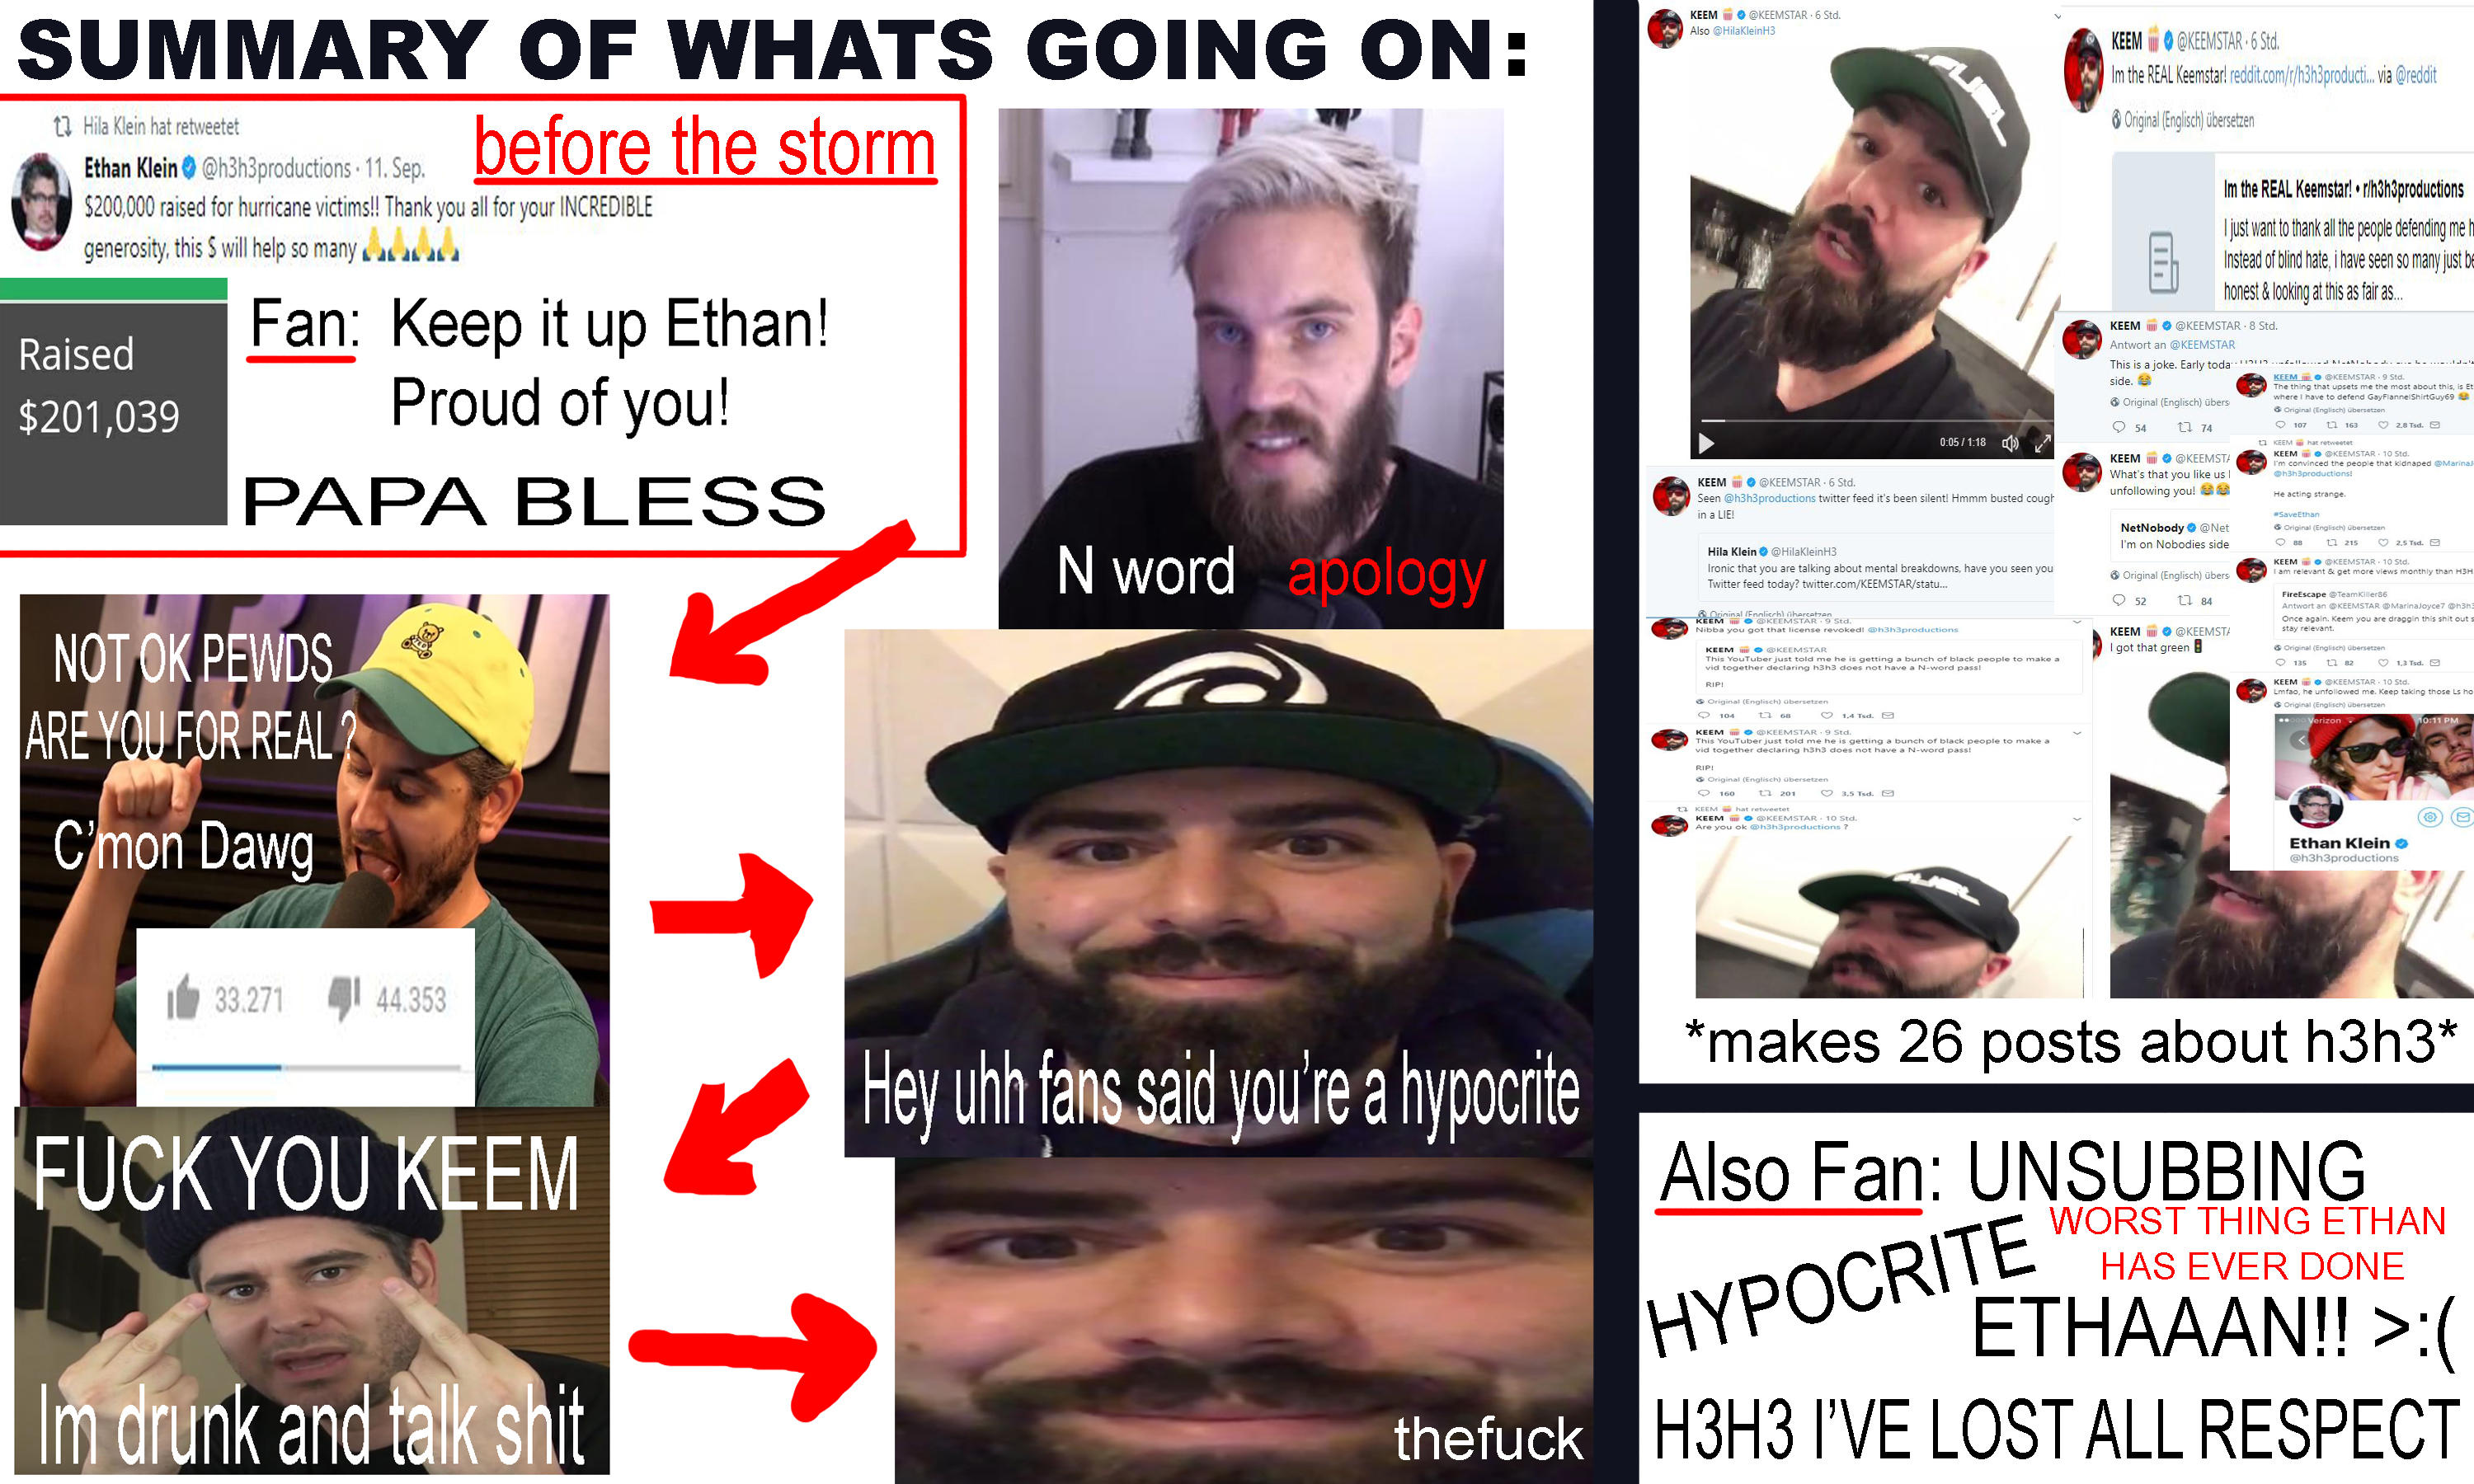 b7521e83e8ae6 PewDiePie s PUBG Livestream N-Word Controversy - The summery of Ethan Klein  vs Fanbase vs Keemstar (and unintentionally Scarce) due to PewDiePie s  N-word ...